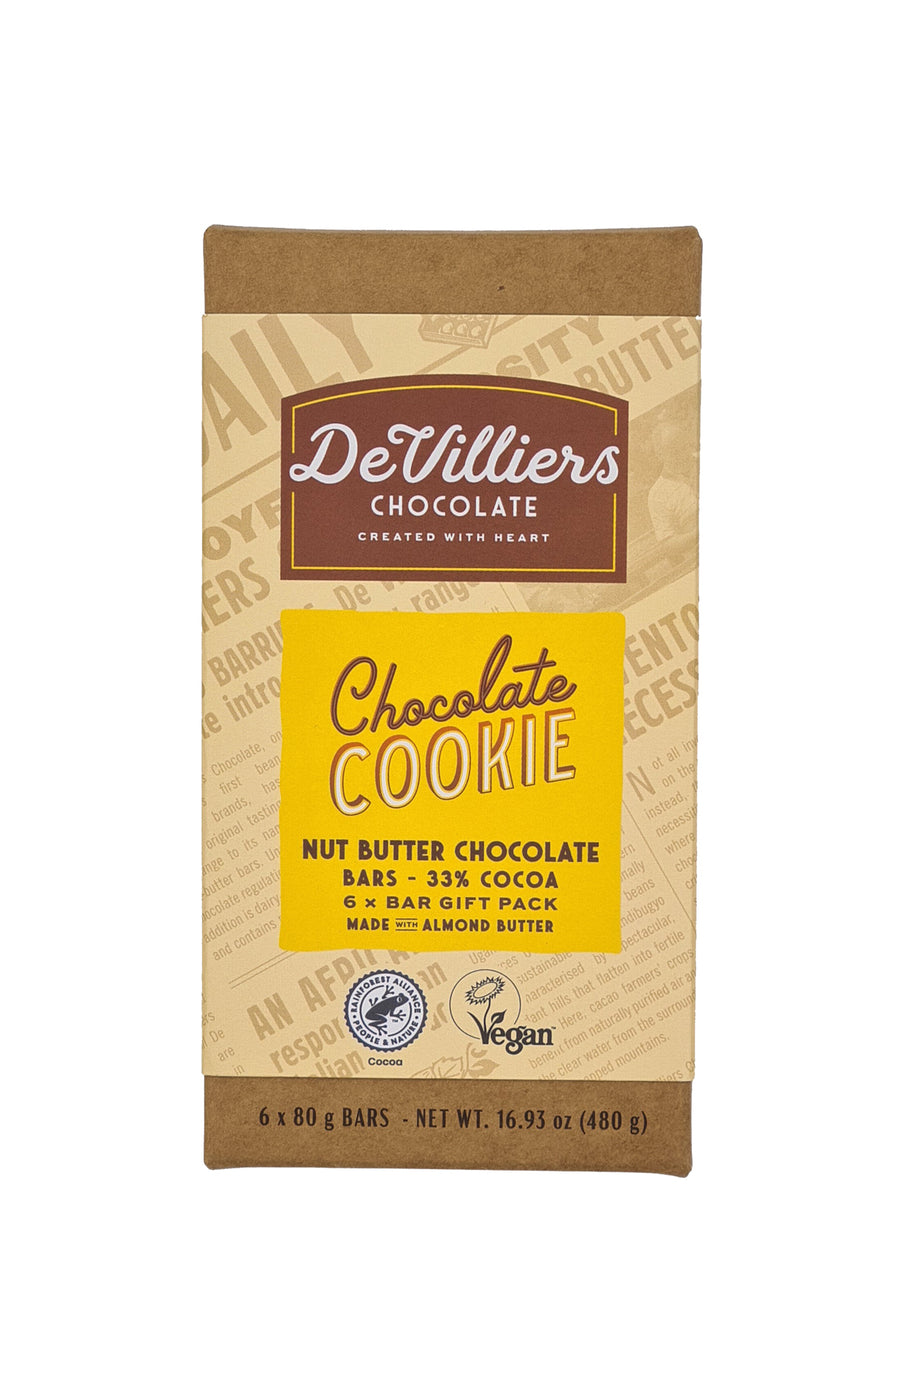 CHOCOLATE COOKIE NUT BUTTER CHOCOLATE BAR - de villiers chocolate us